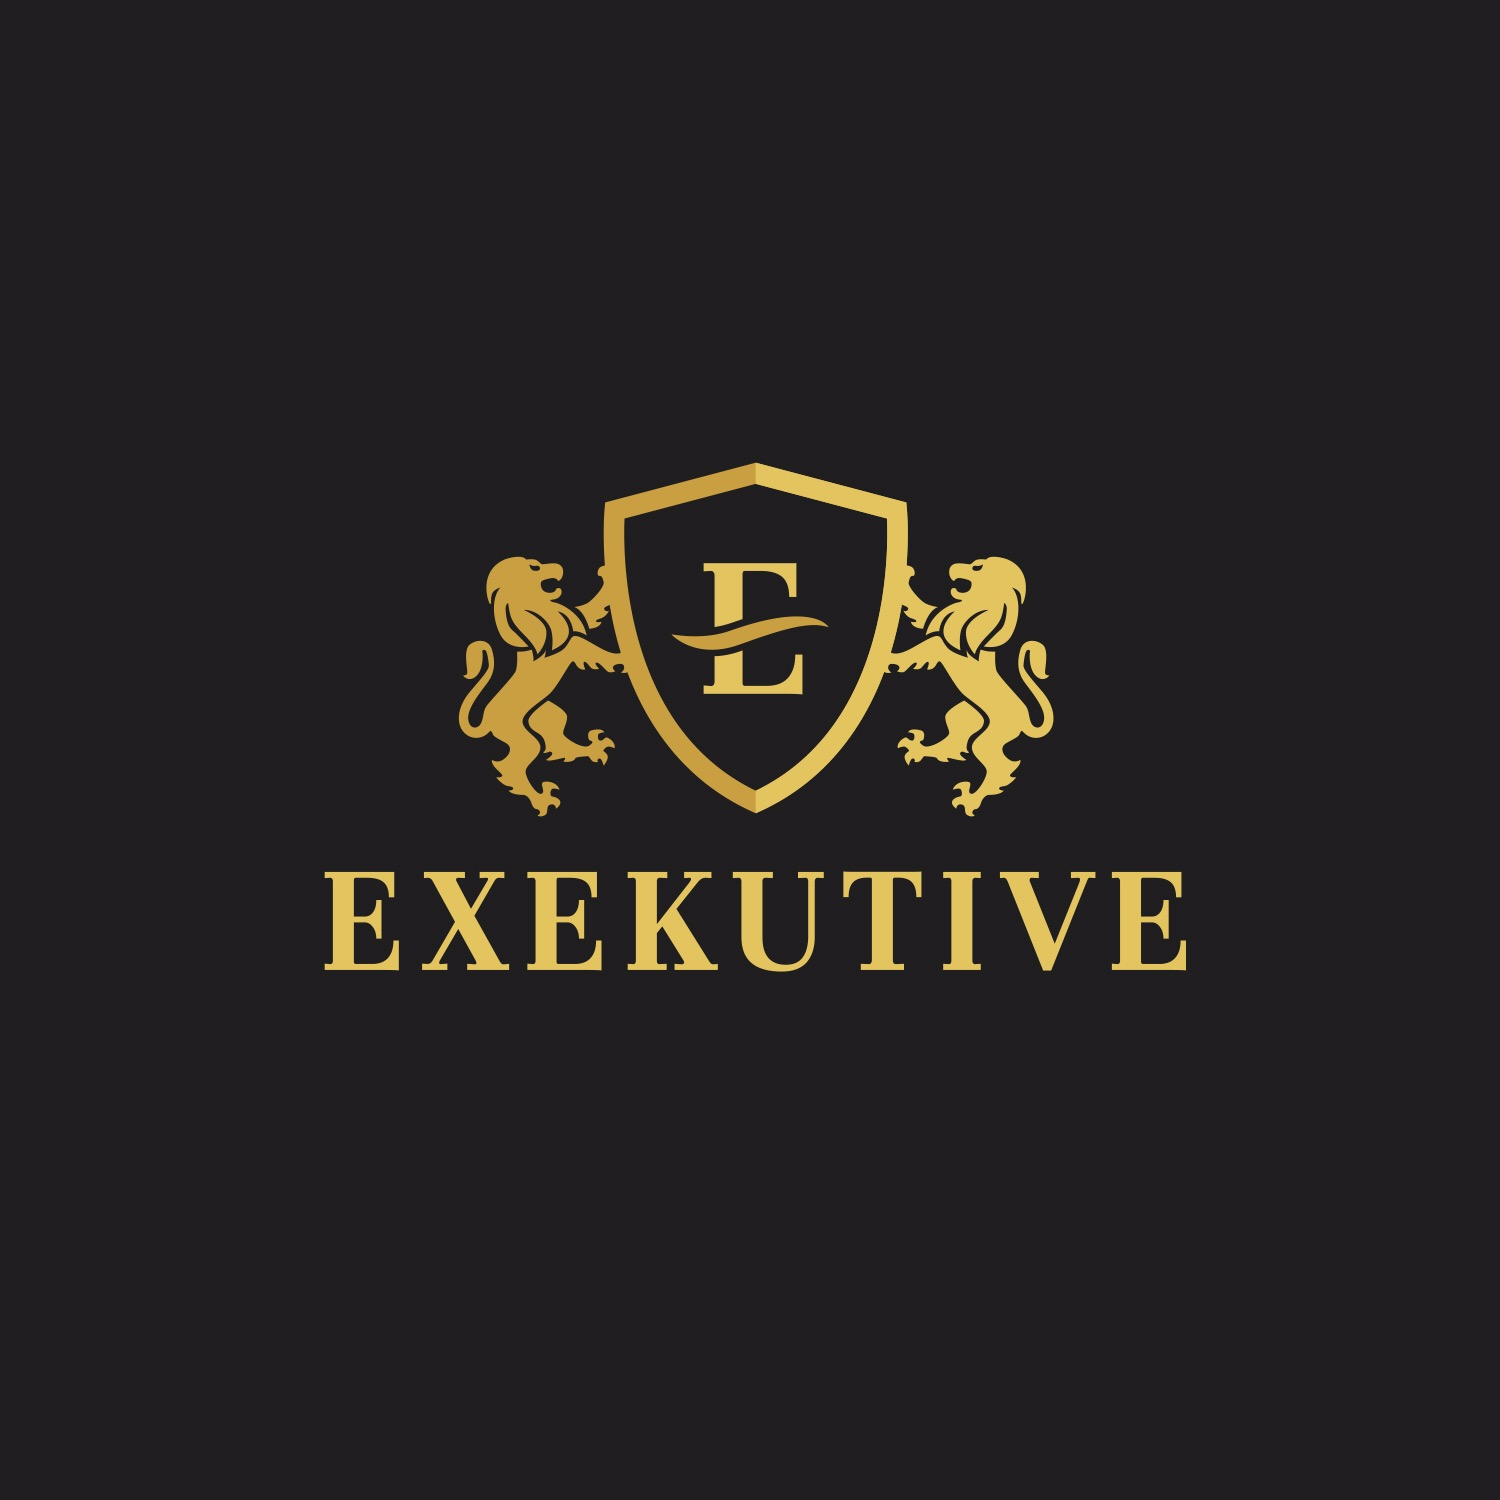 Exekutive Groom